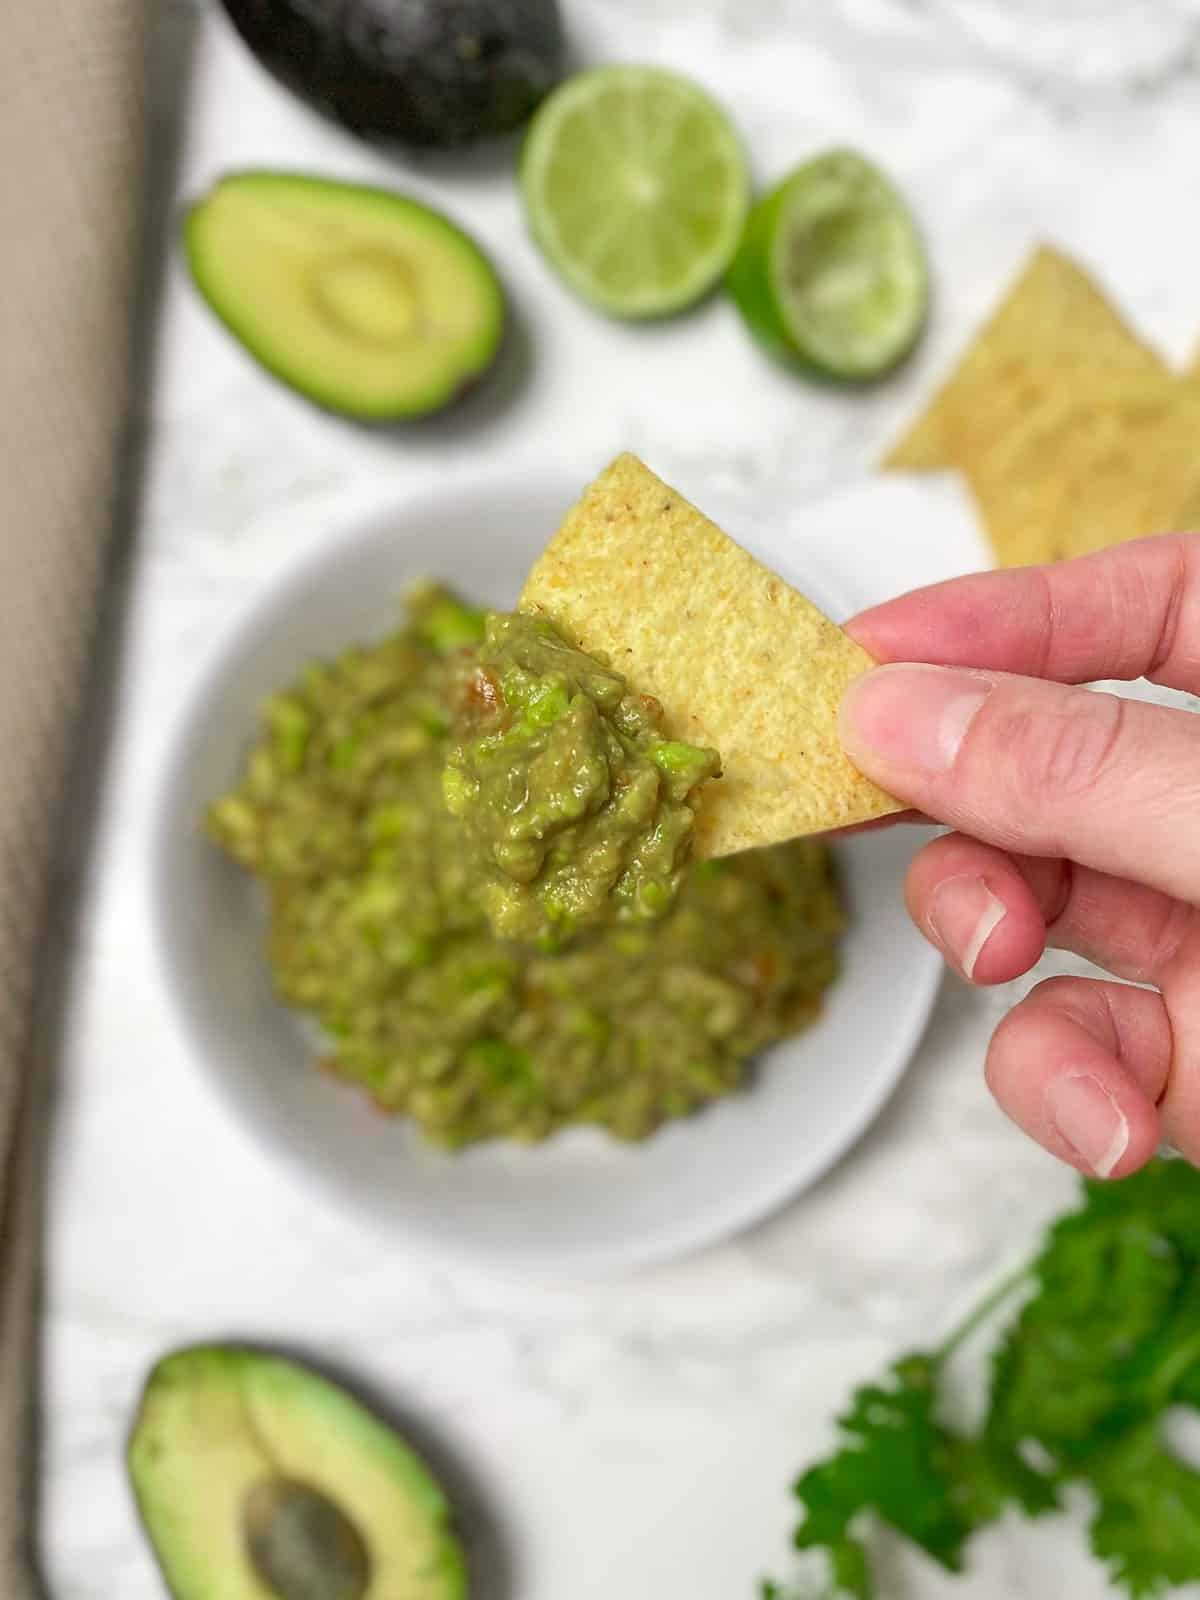 chip dipping into bowl of guacamole